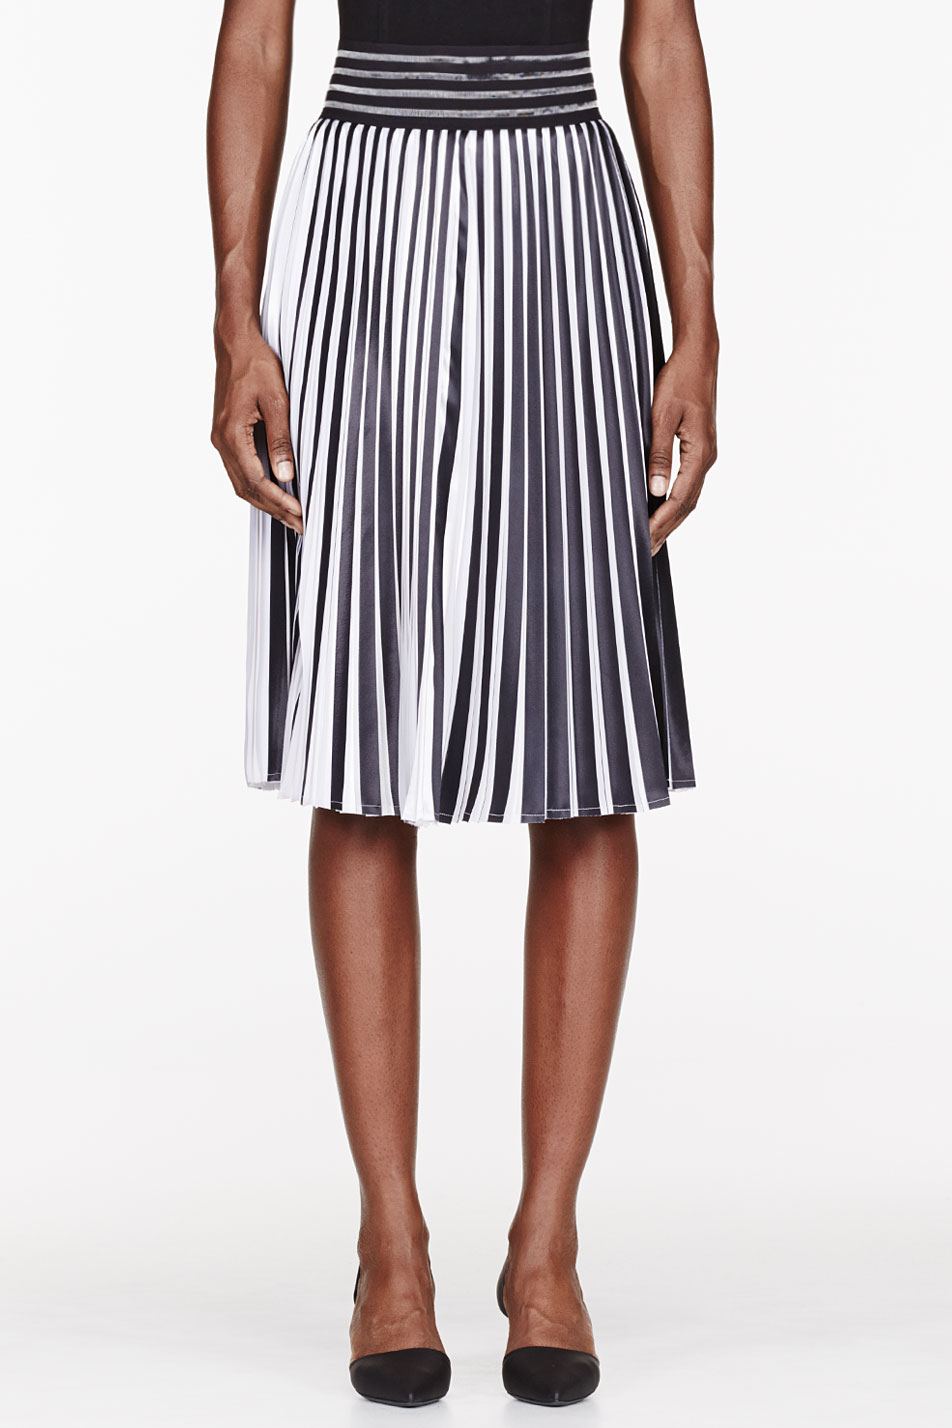 Christopher kane Black and White Pleated Skirt in Black | Lyst